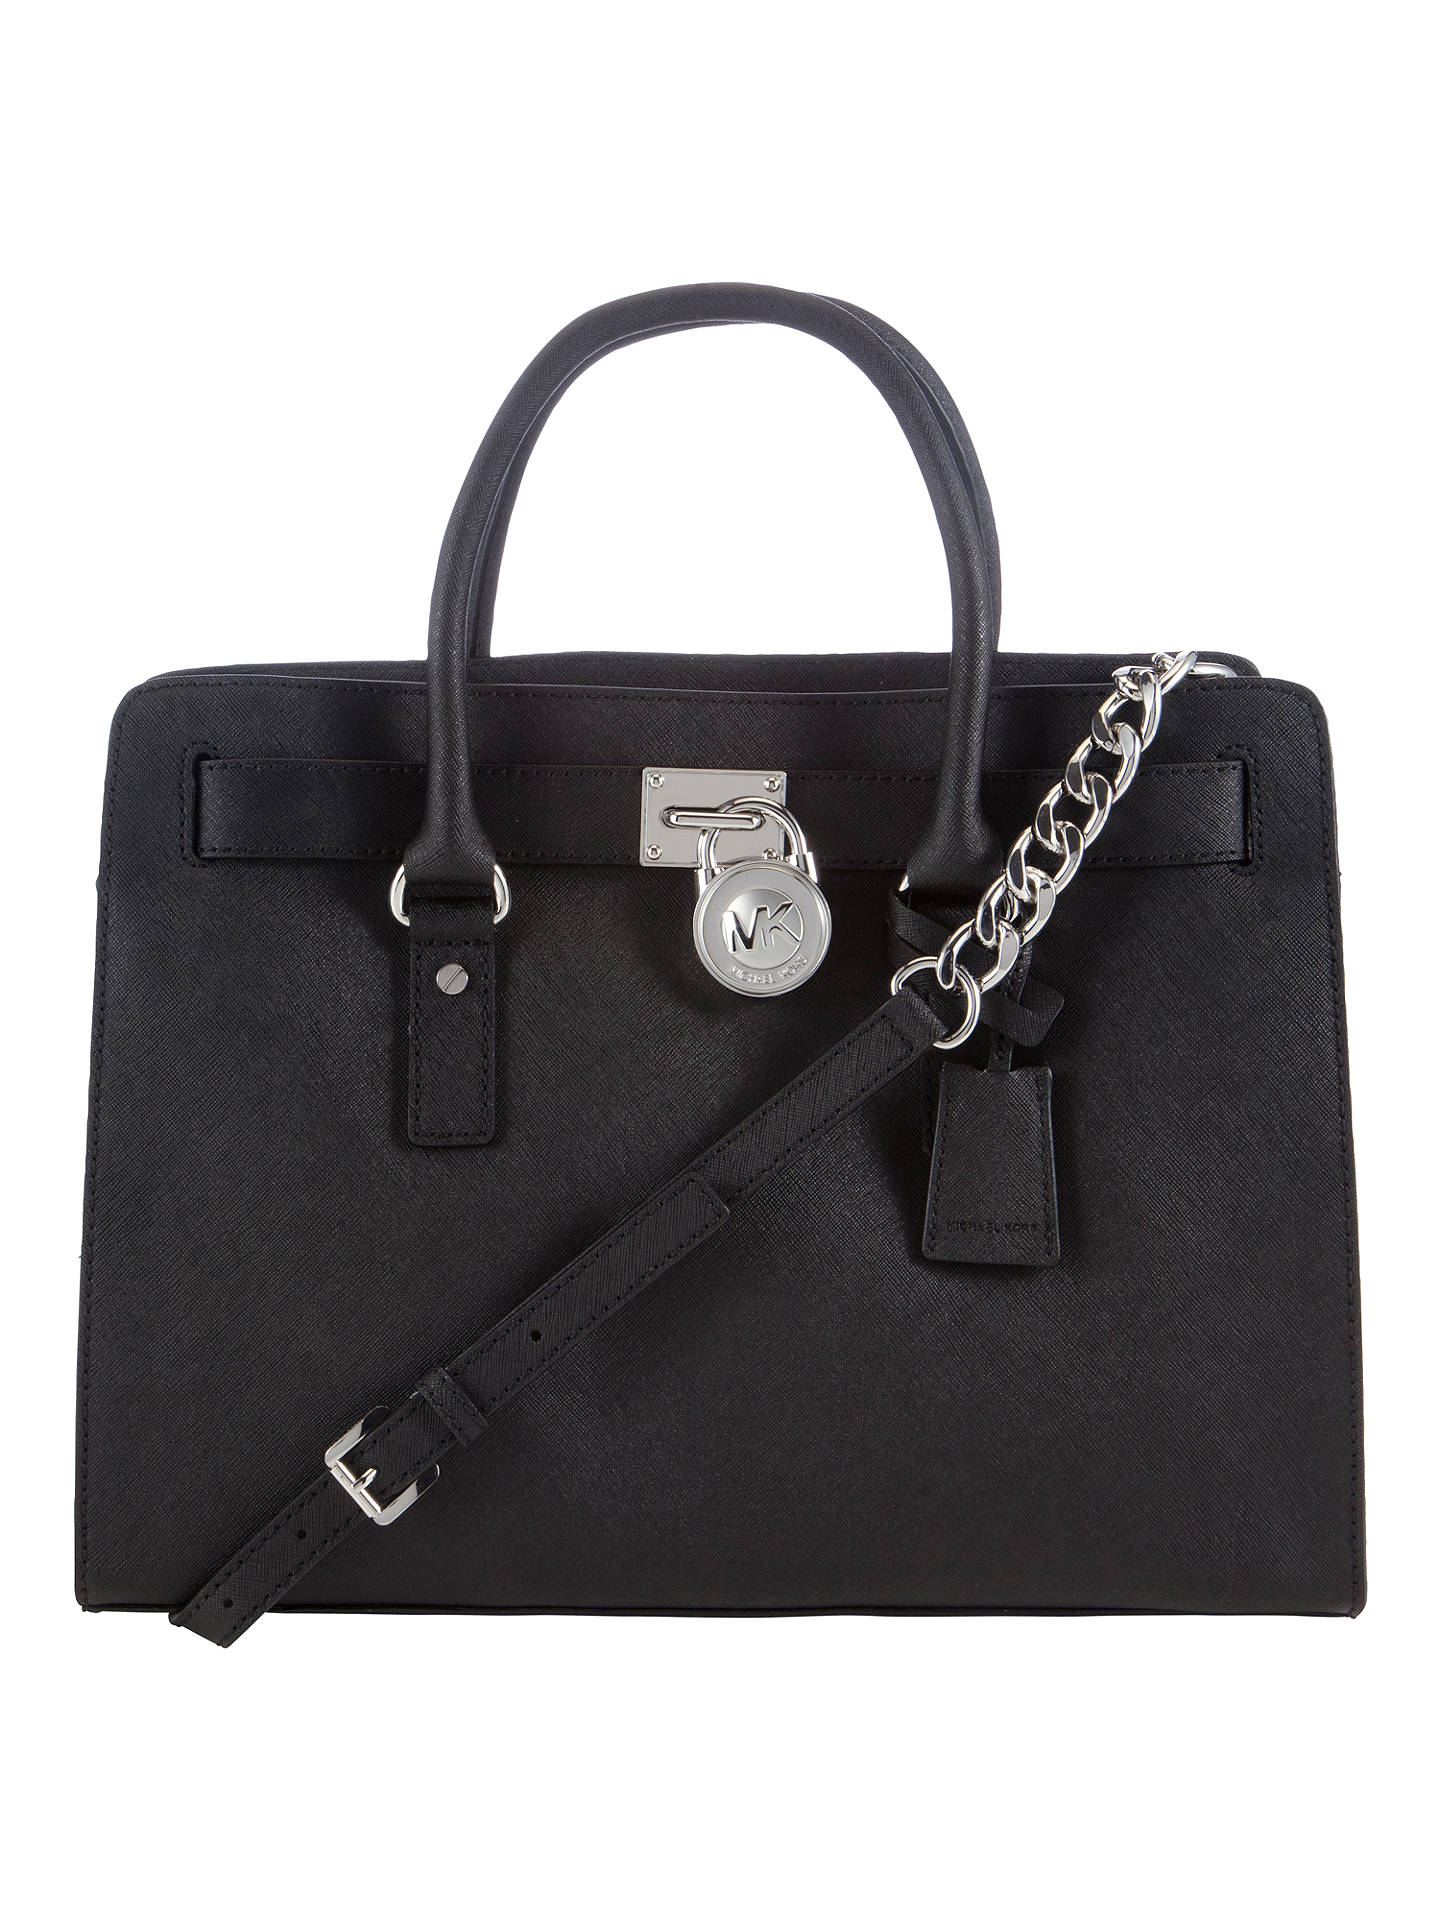 6bb7b55ed016 Buy MICHAEL Michael Kors Hamilton Large Leather Satchel Bag, Black Online  at johnlewis.com ...